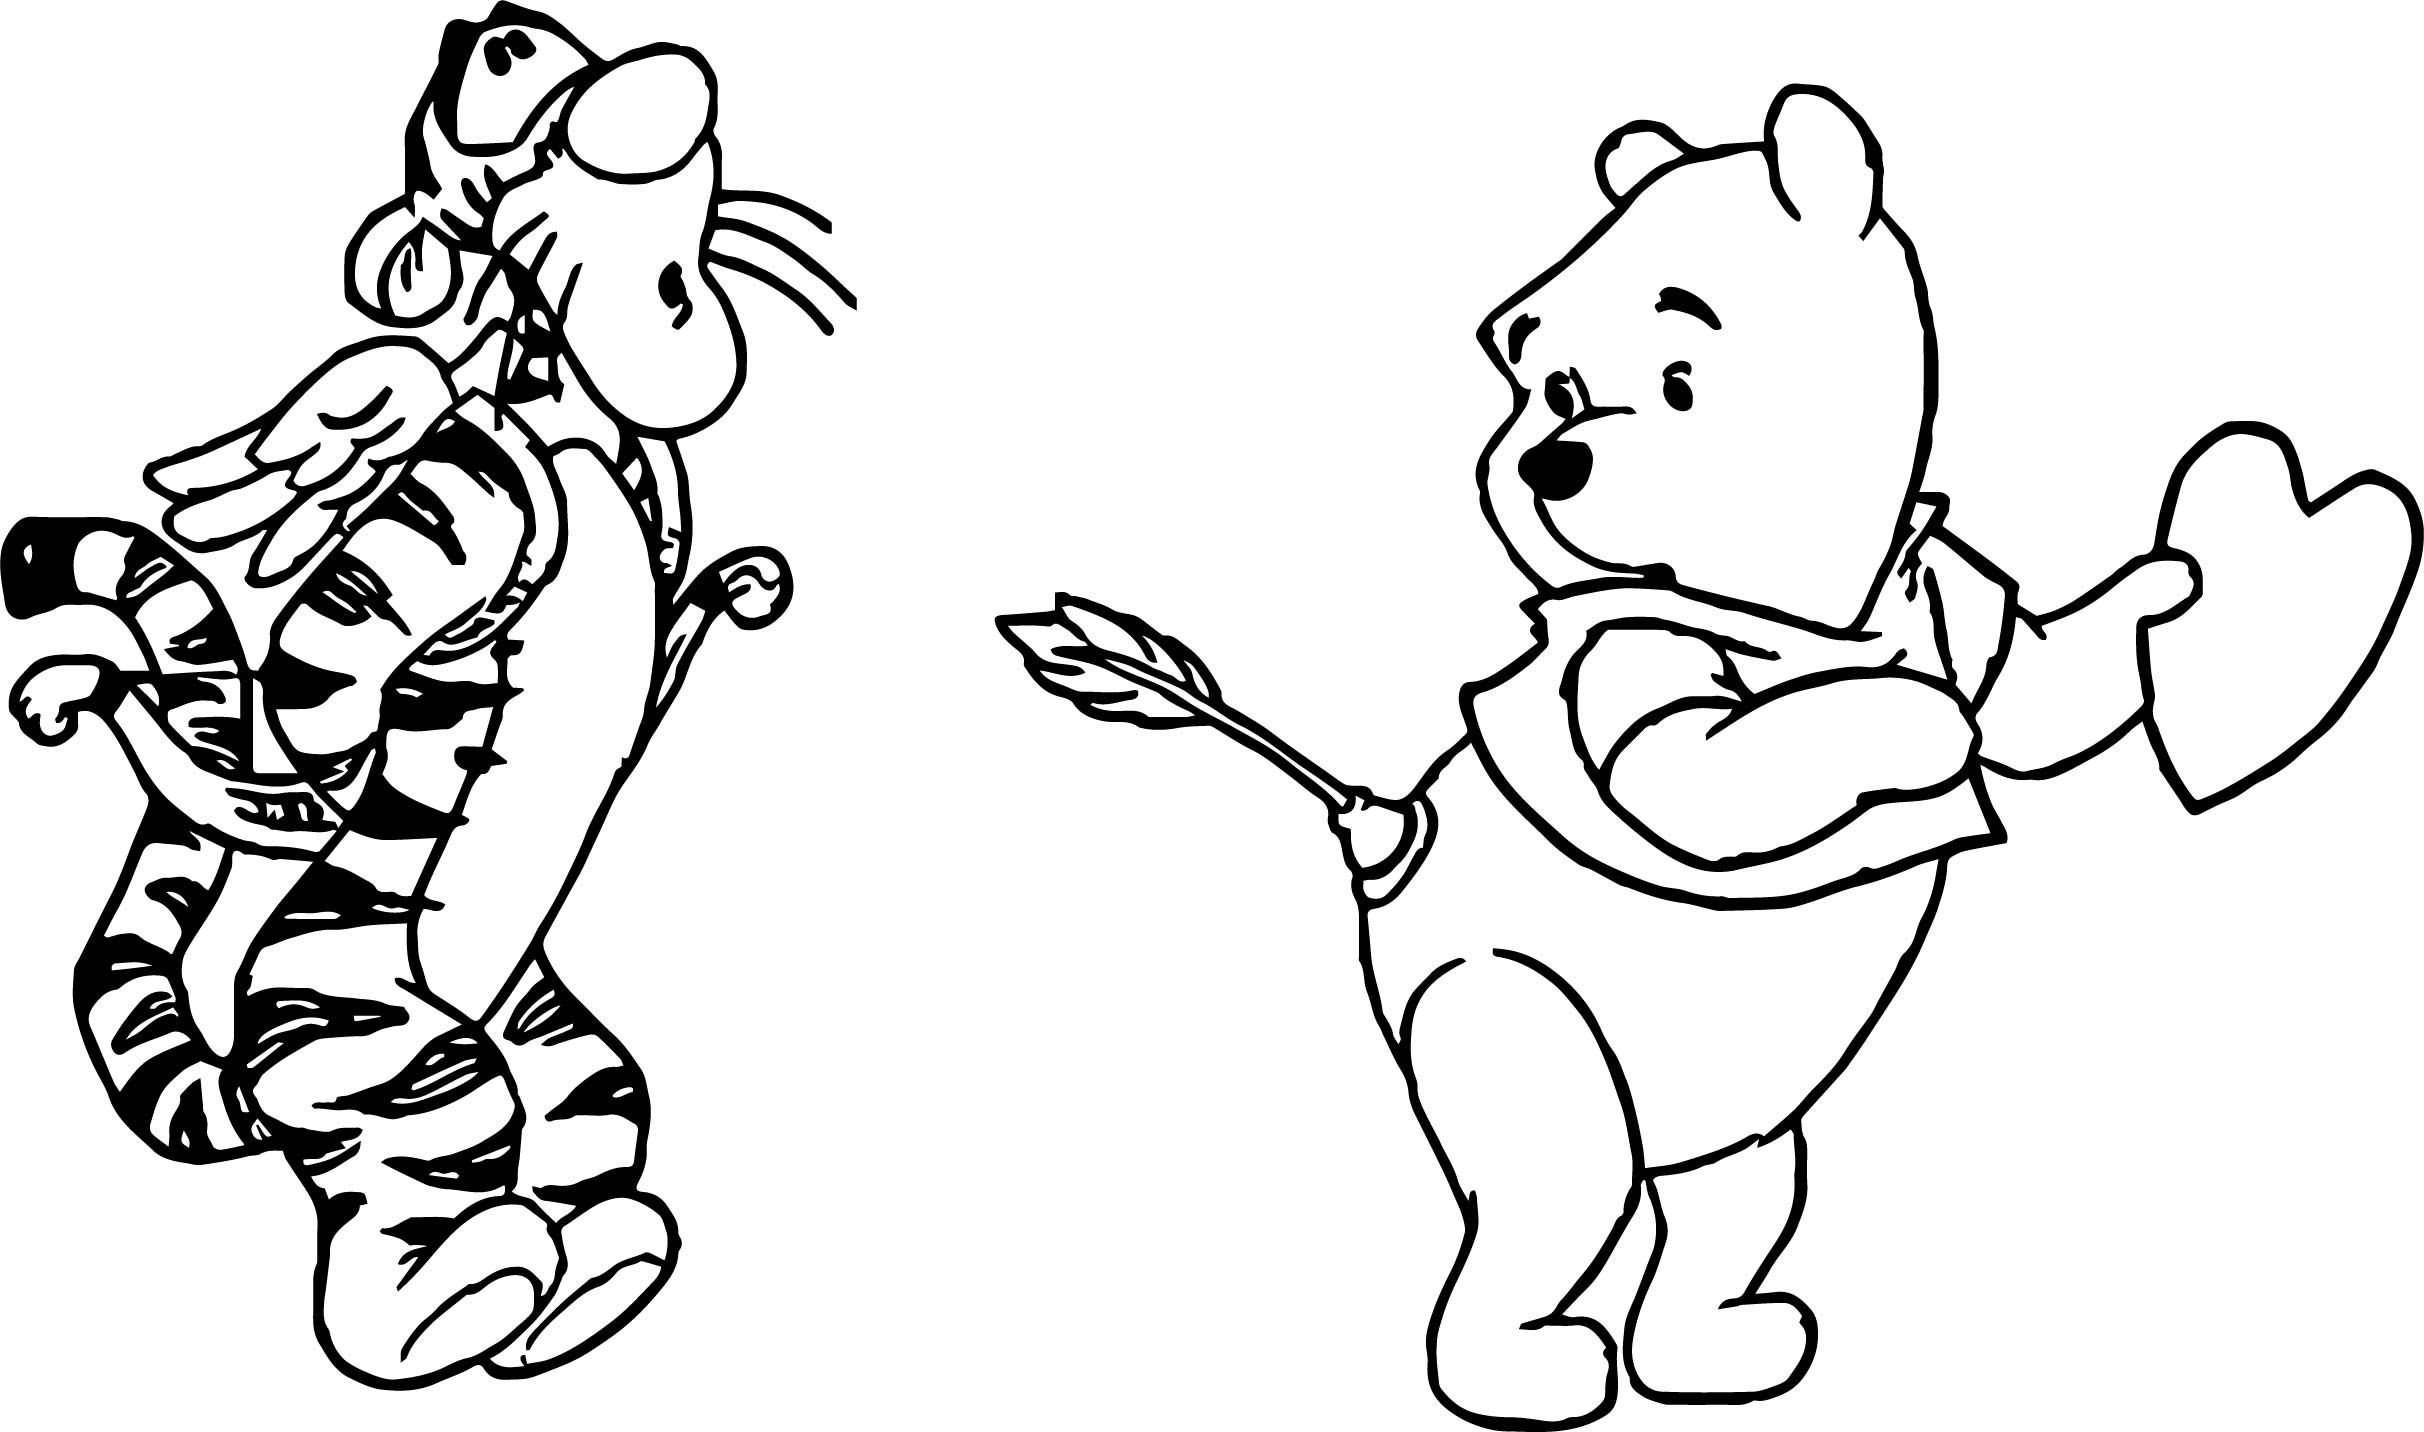 Cool Pooh Tigger Cupid Wrong Target Arrow Coloring Page Coloring